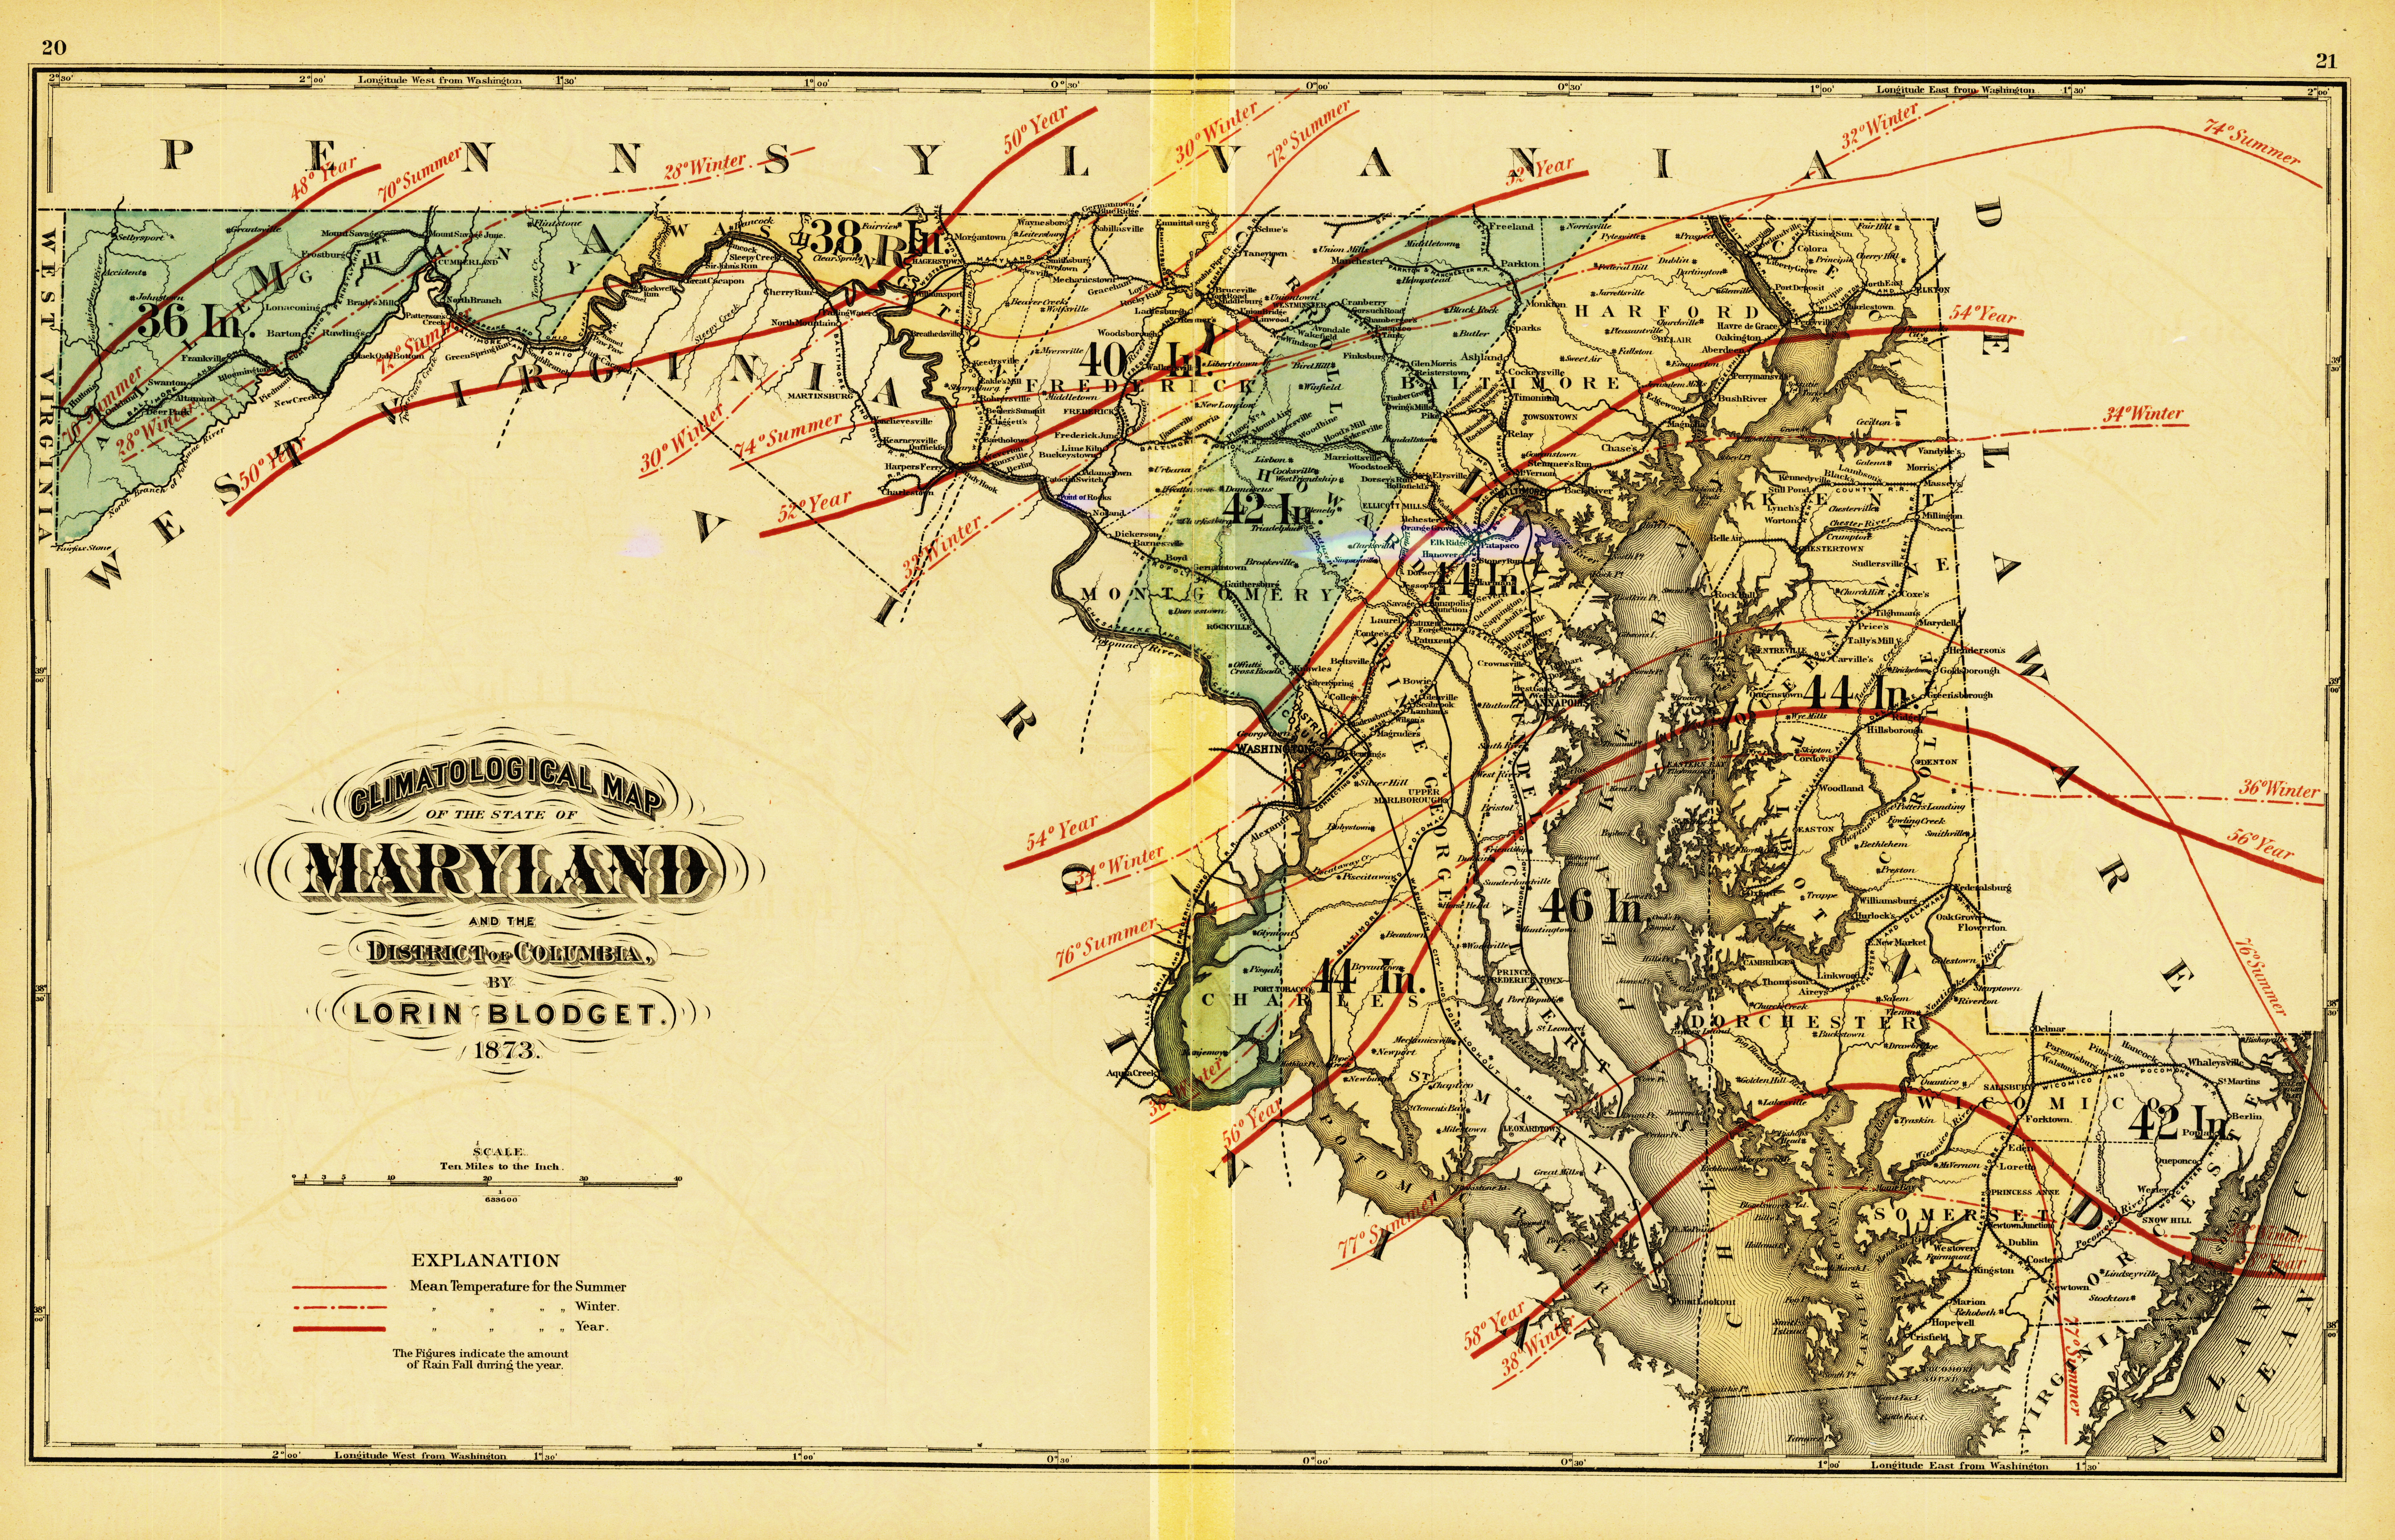 MARYLAND] New Topographical Atlas of the State of Maryland